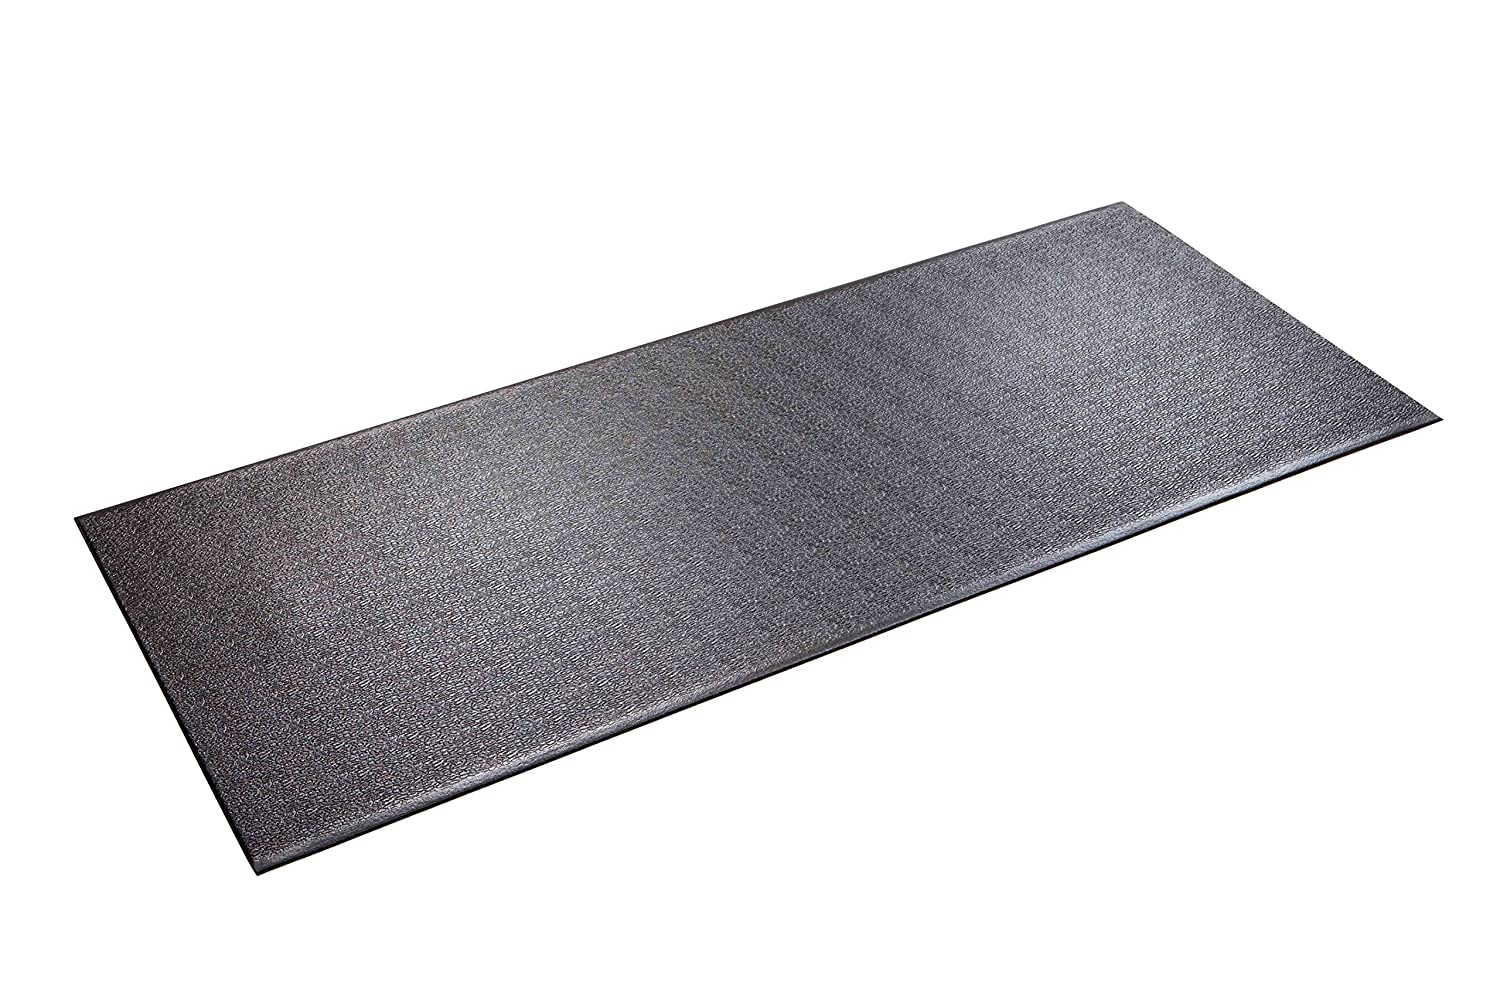 """SuperMats Heavy Duty Equipment Mat 30GS Made in U.S.A. for Treadmills Ellipticals Rowing Machines Recumbent Bikes and Exercise Equipment (2.5-Feet x 6-Feet) (30"""" x 72"""")"""